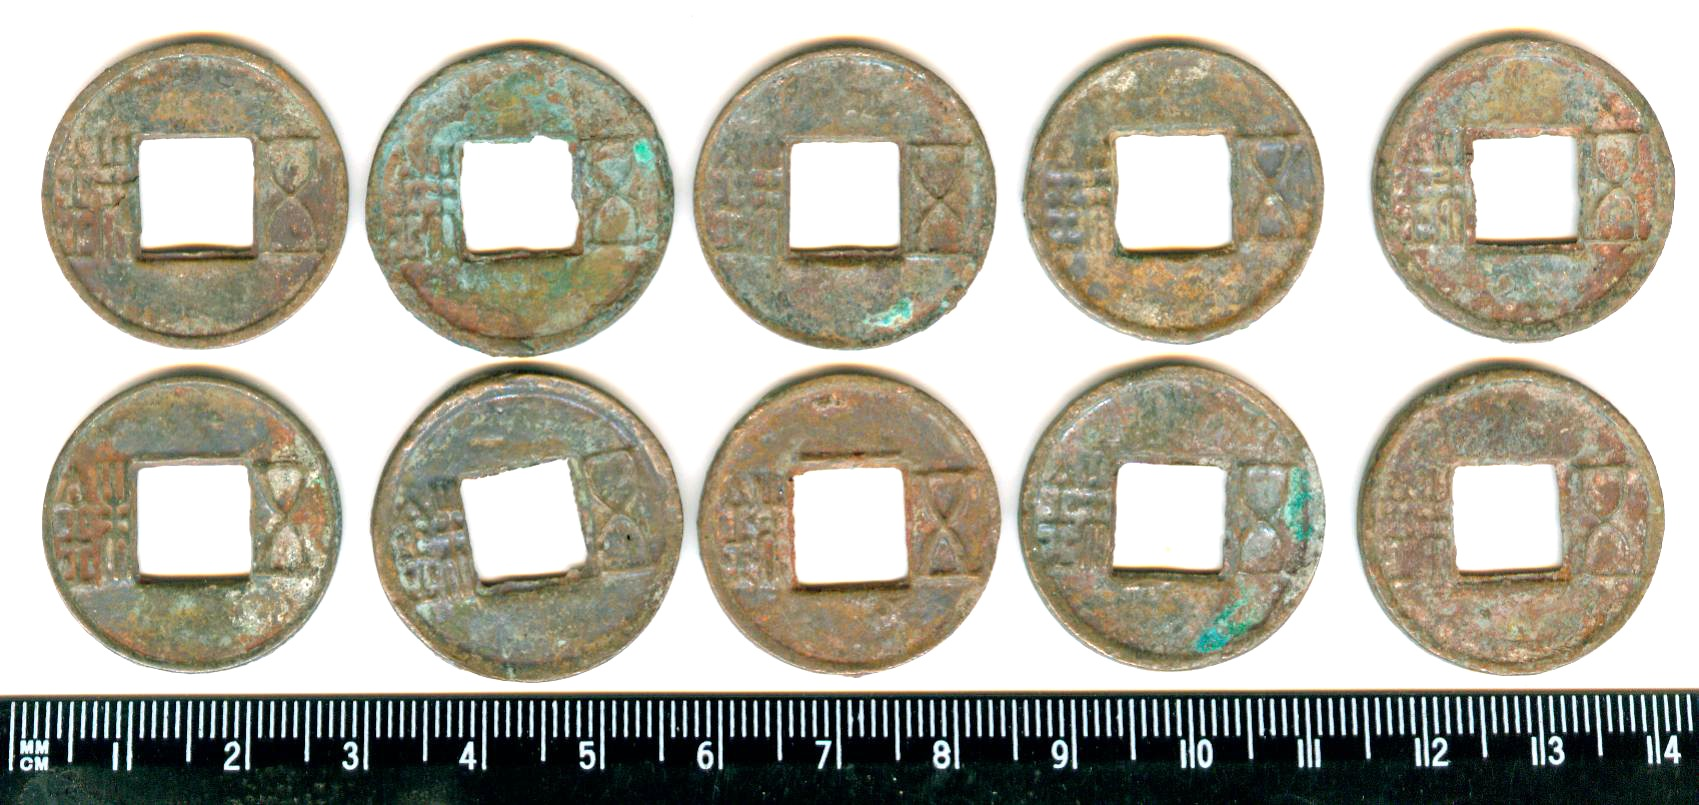 K2126, China 10 Pcs Chen Wu-Zhu Coins, Wholesale, ac AD 300-600